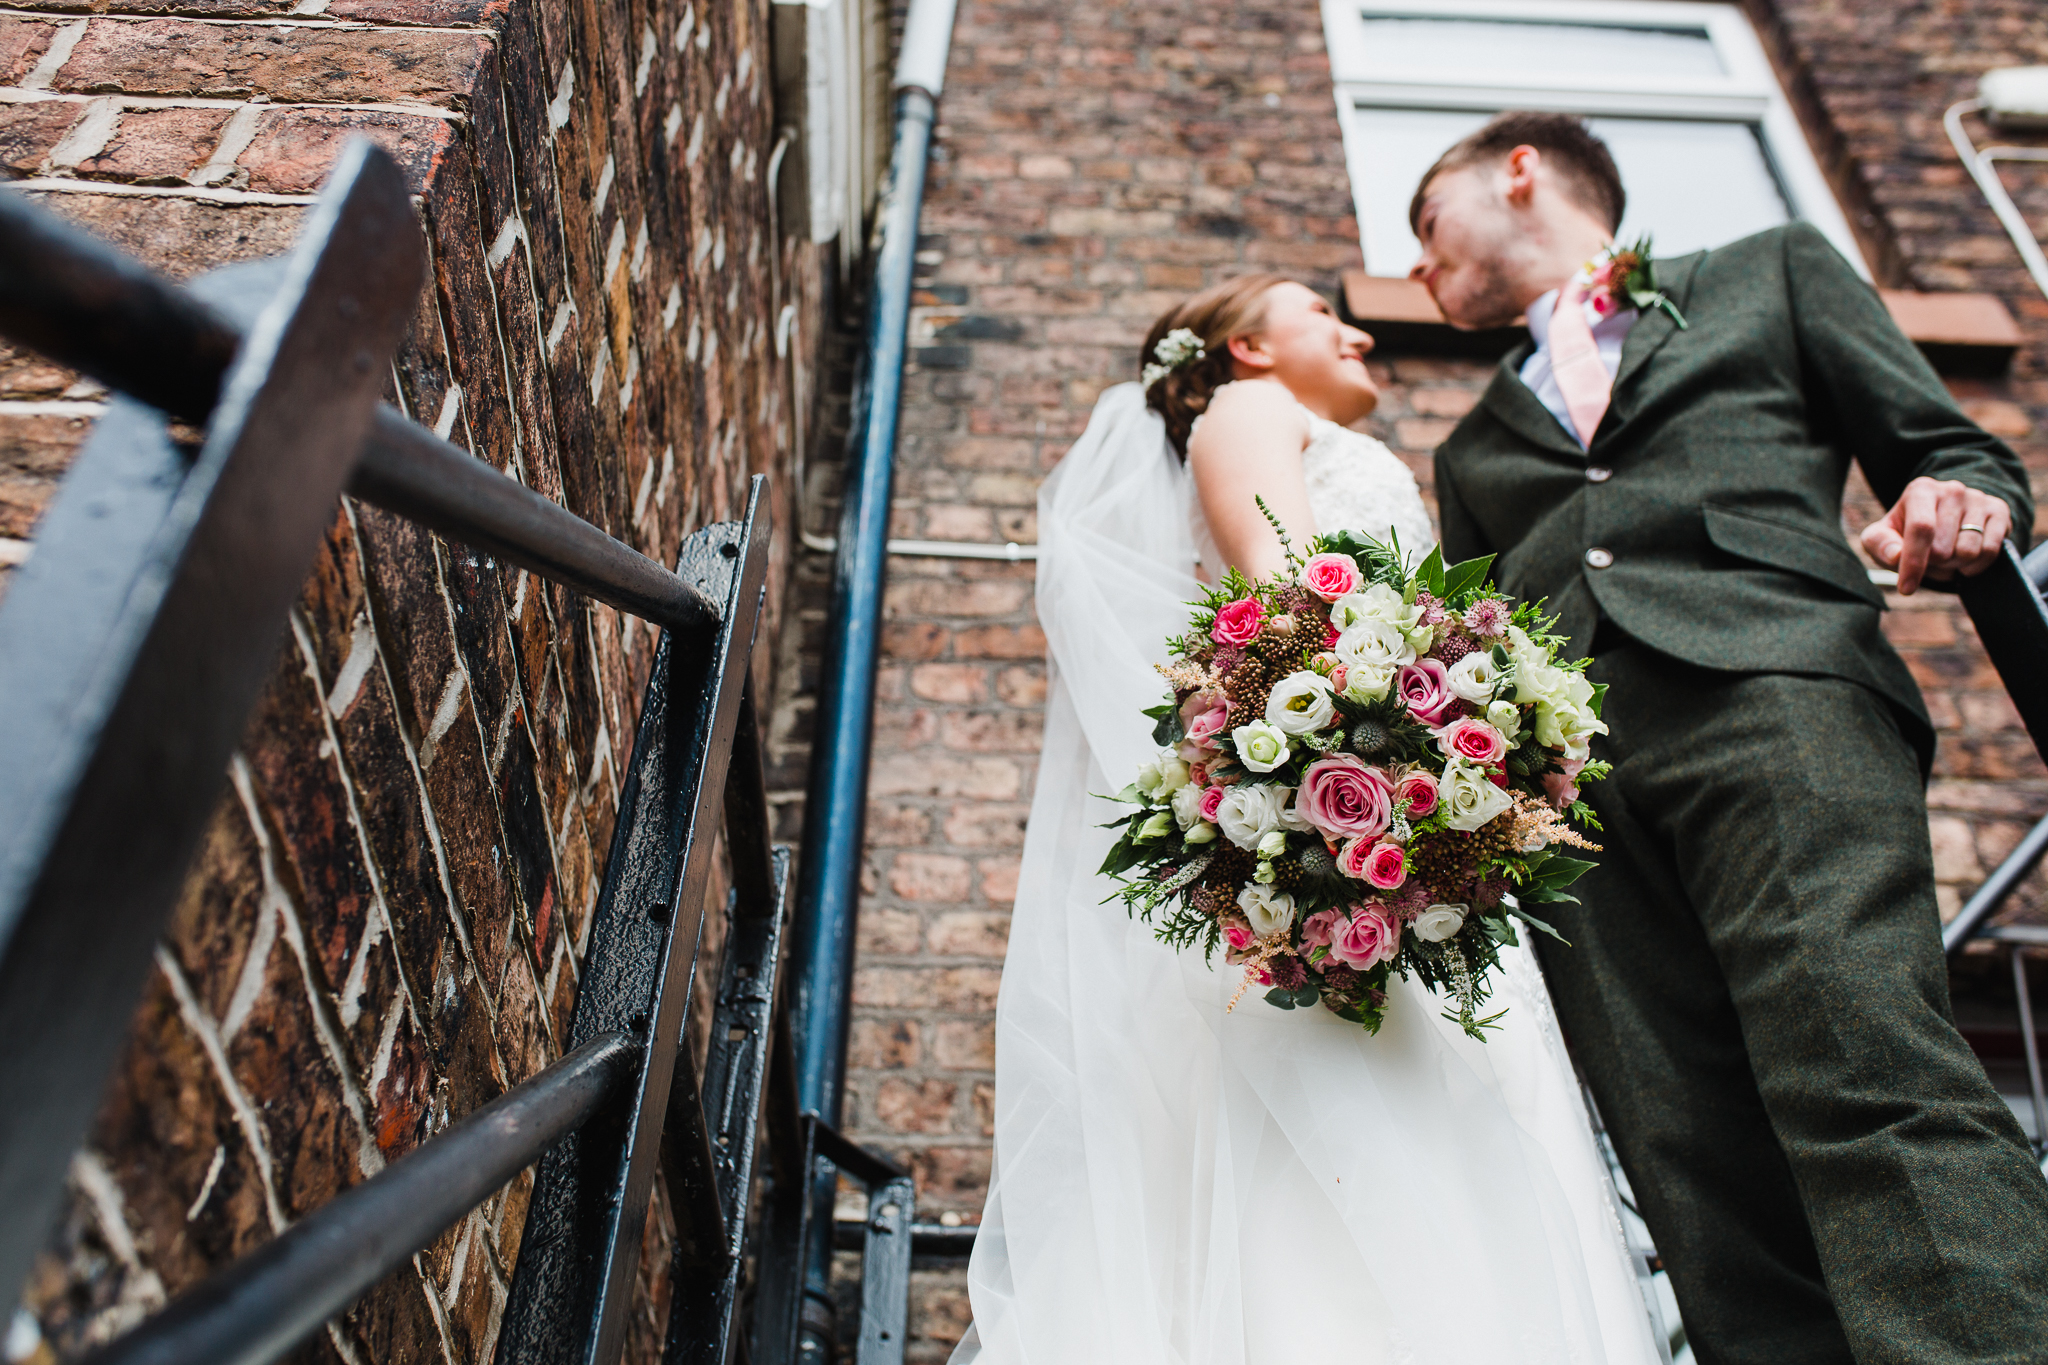 Jess and Ben - Liverpool wedding - bride and groom portrait on the steps